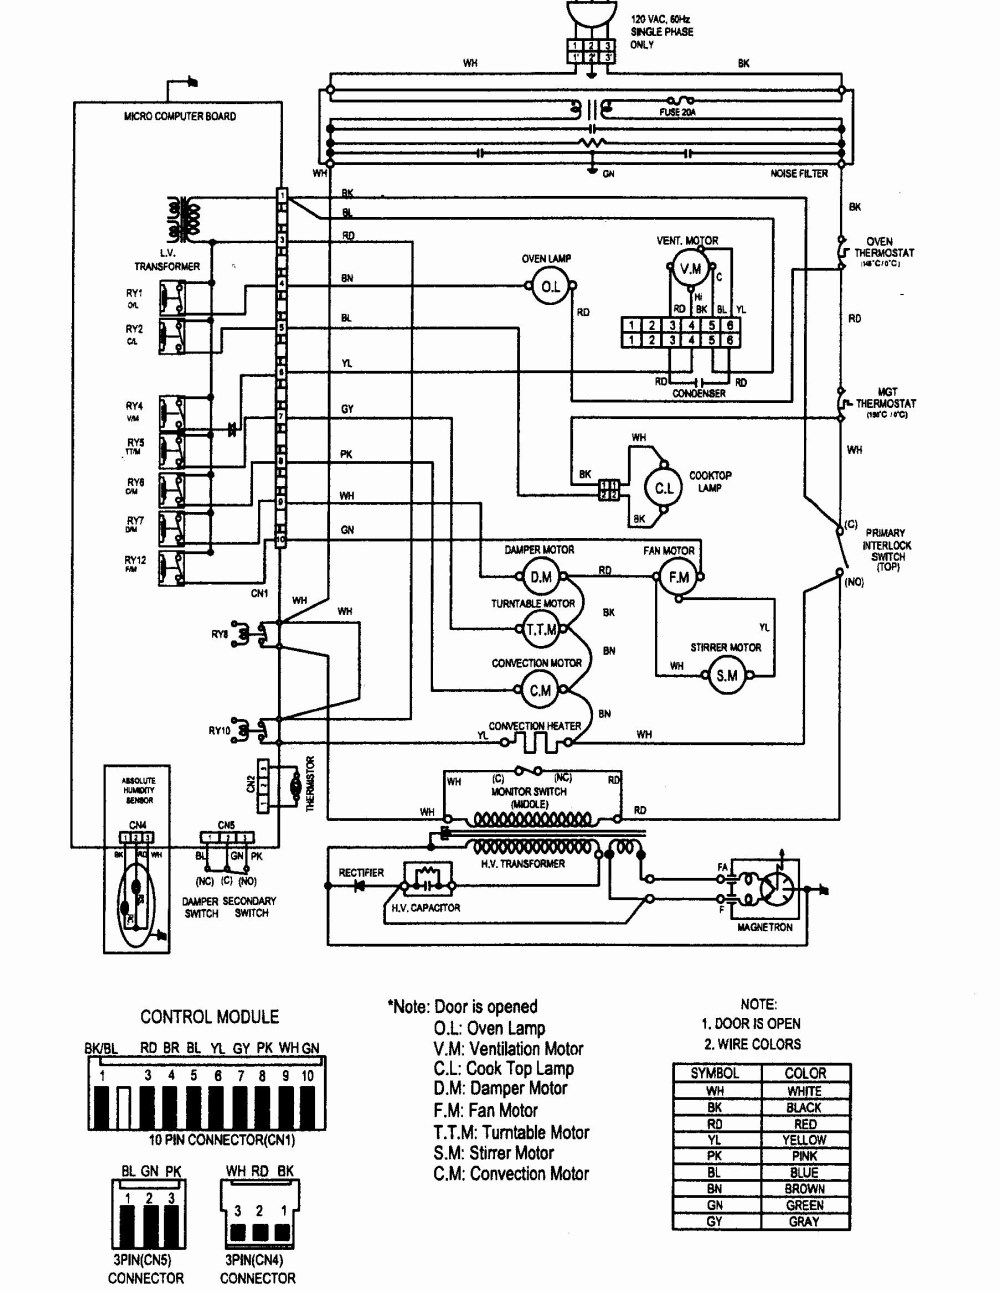 medium resolution of model wiring kenmore for schematic refrigerator 1069552681 wiring electrical schematic for kenmore refrigerator